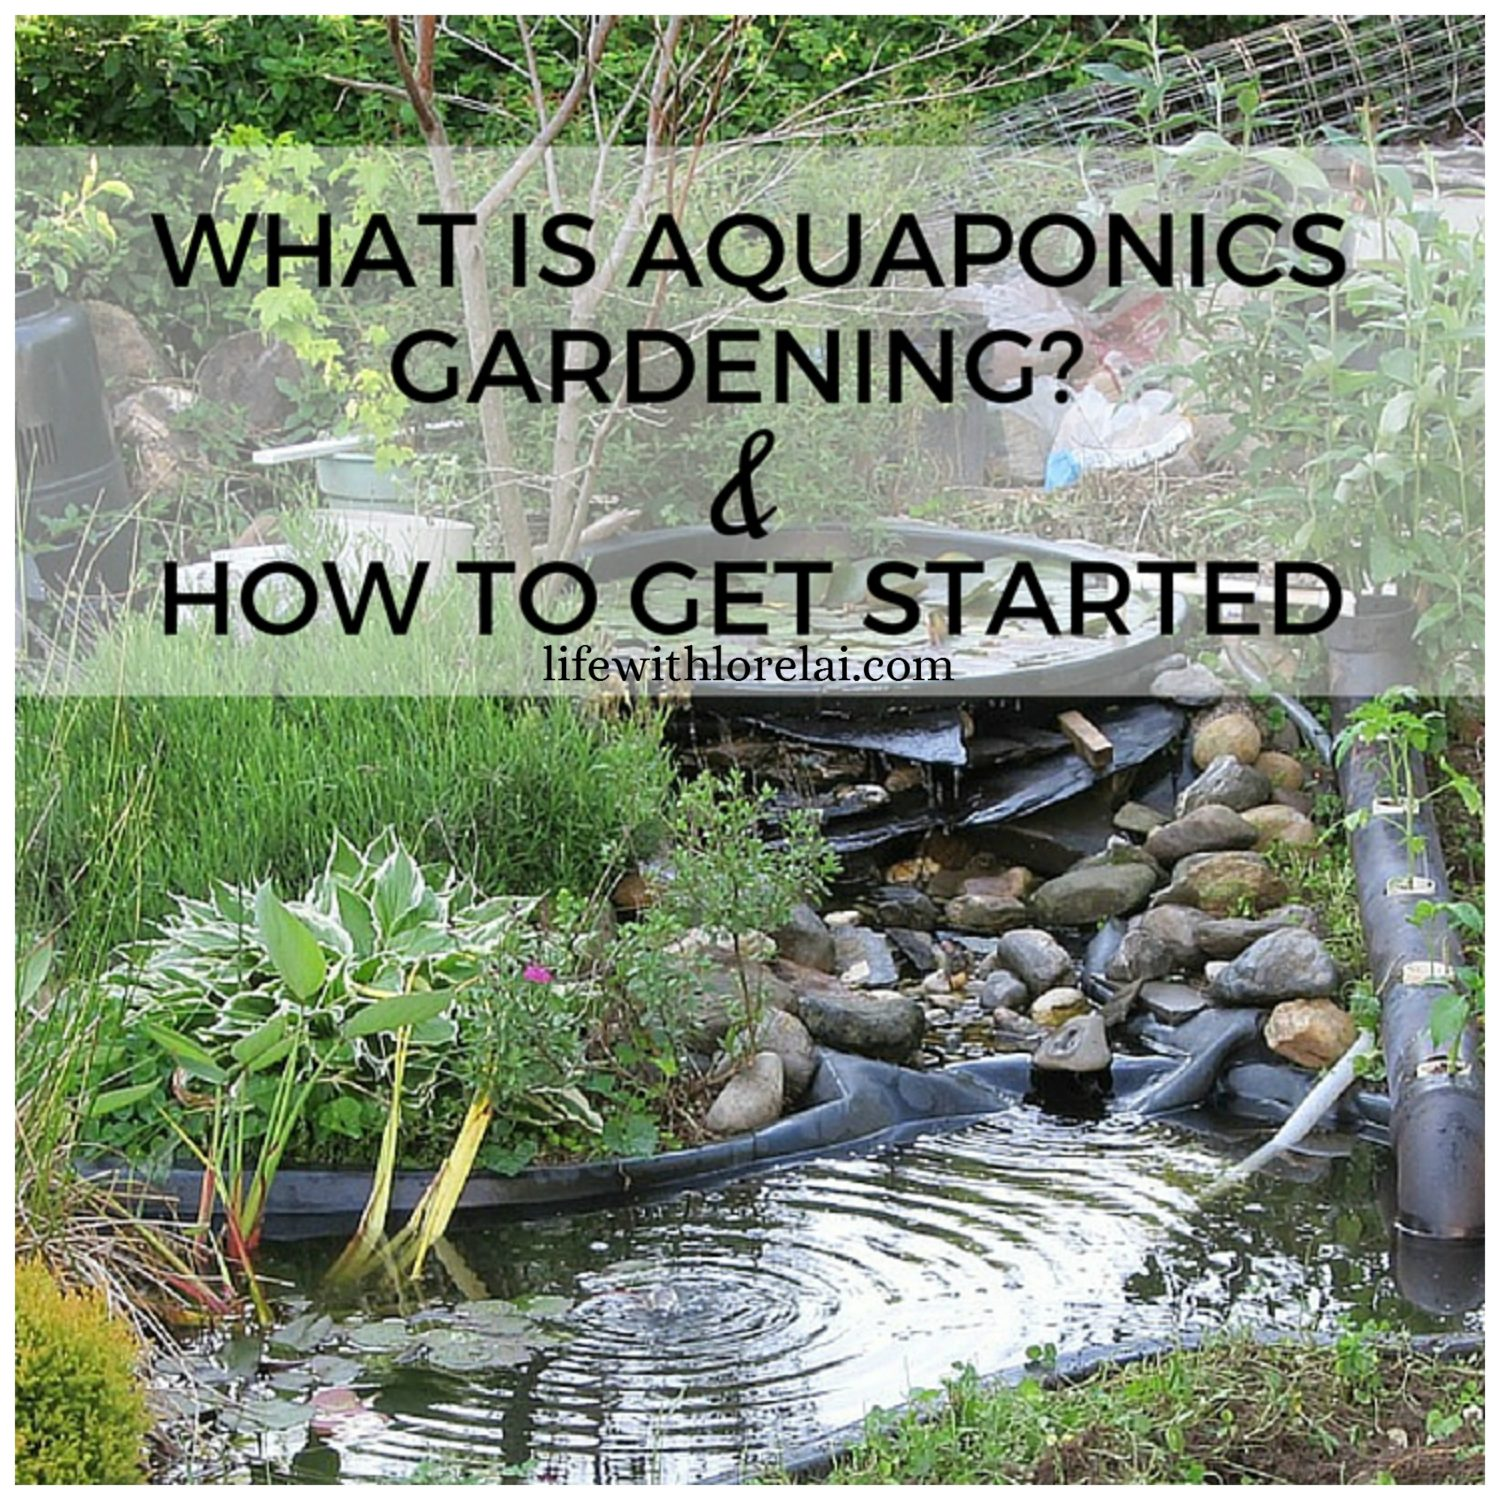 Aquaponics-Gardening-How-To-Start-Life-With-Lorelai